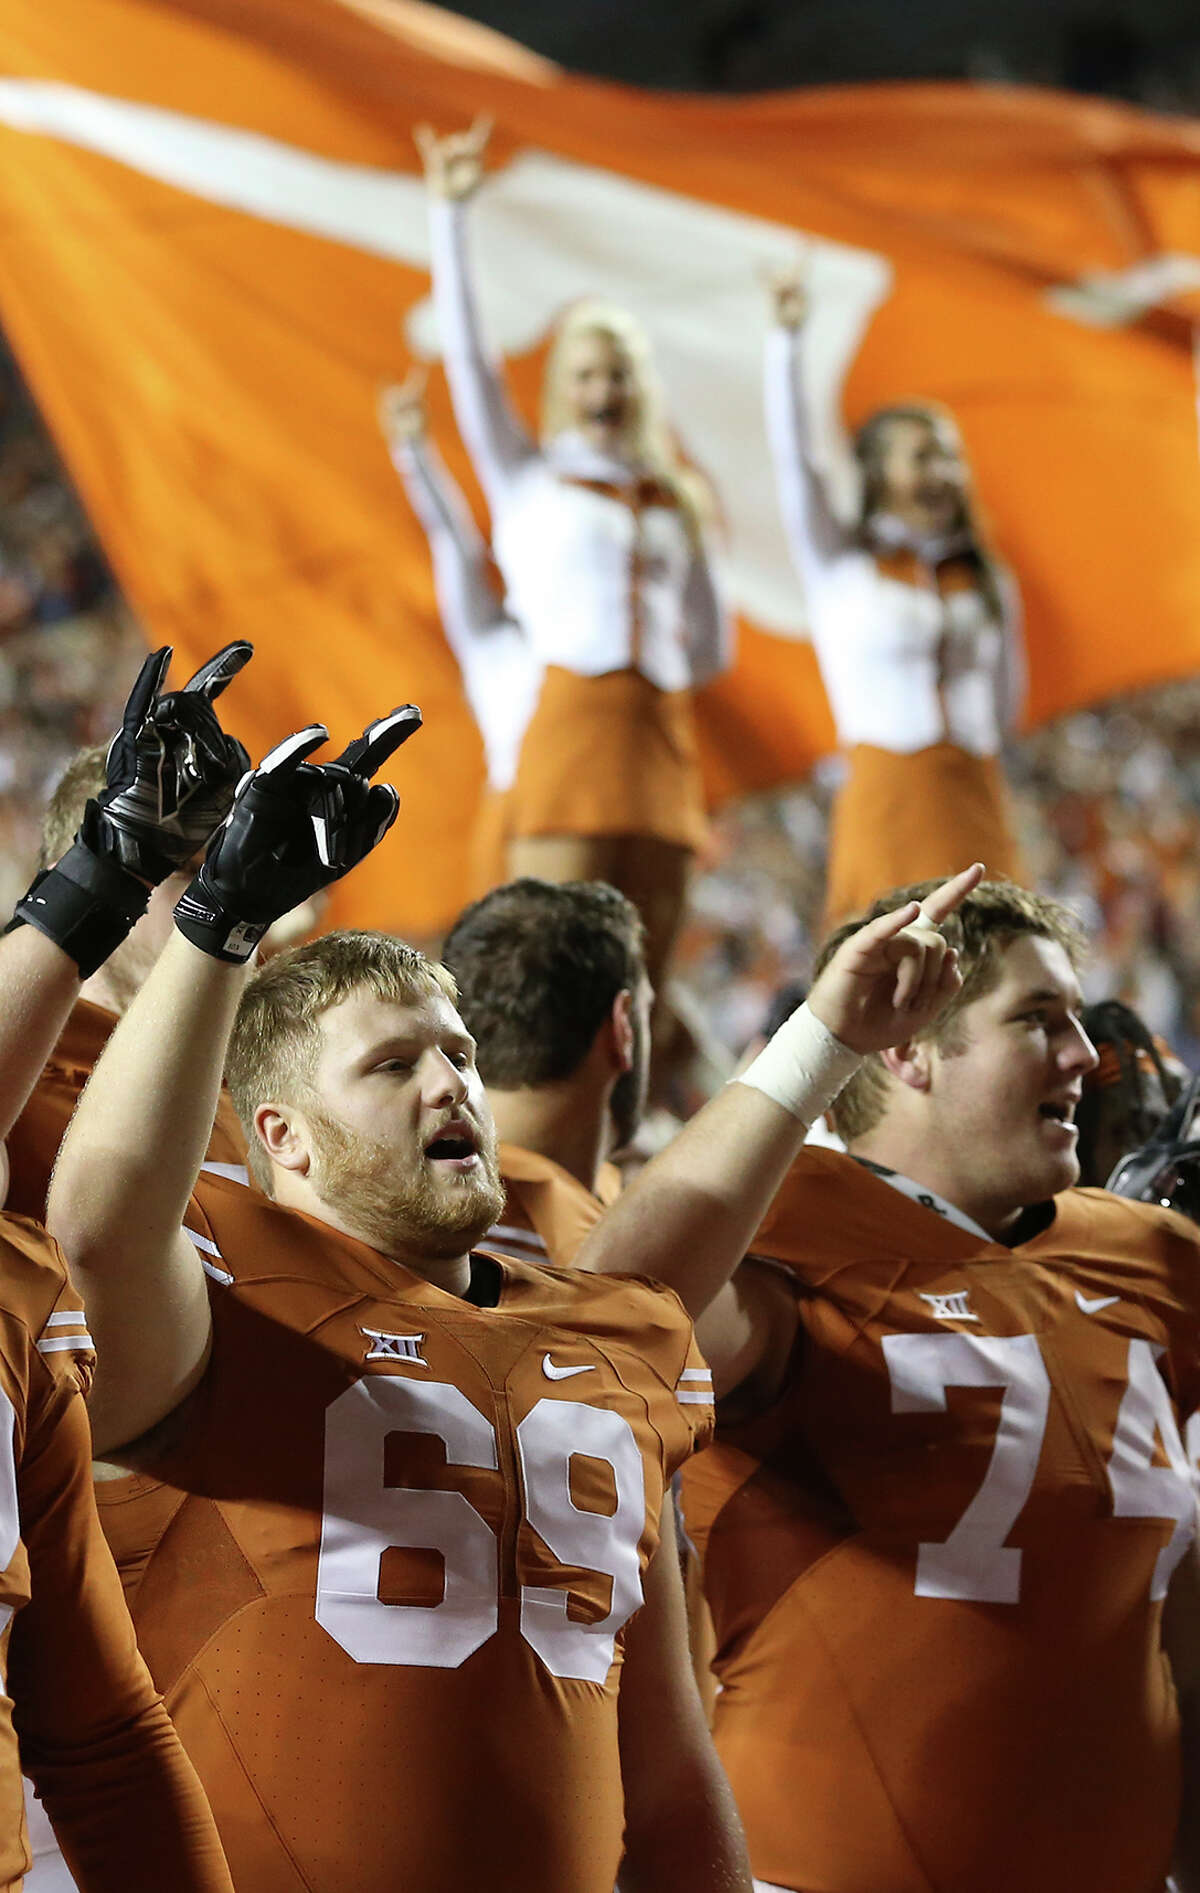 RIGHT: Longhorns celebrate a win as Texas hosts Kansas at DKR Stadium on November 7, 2015.